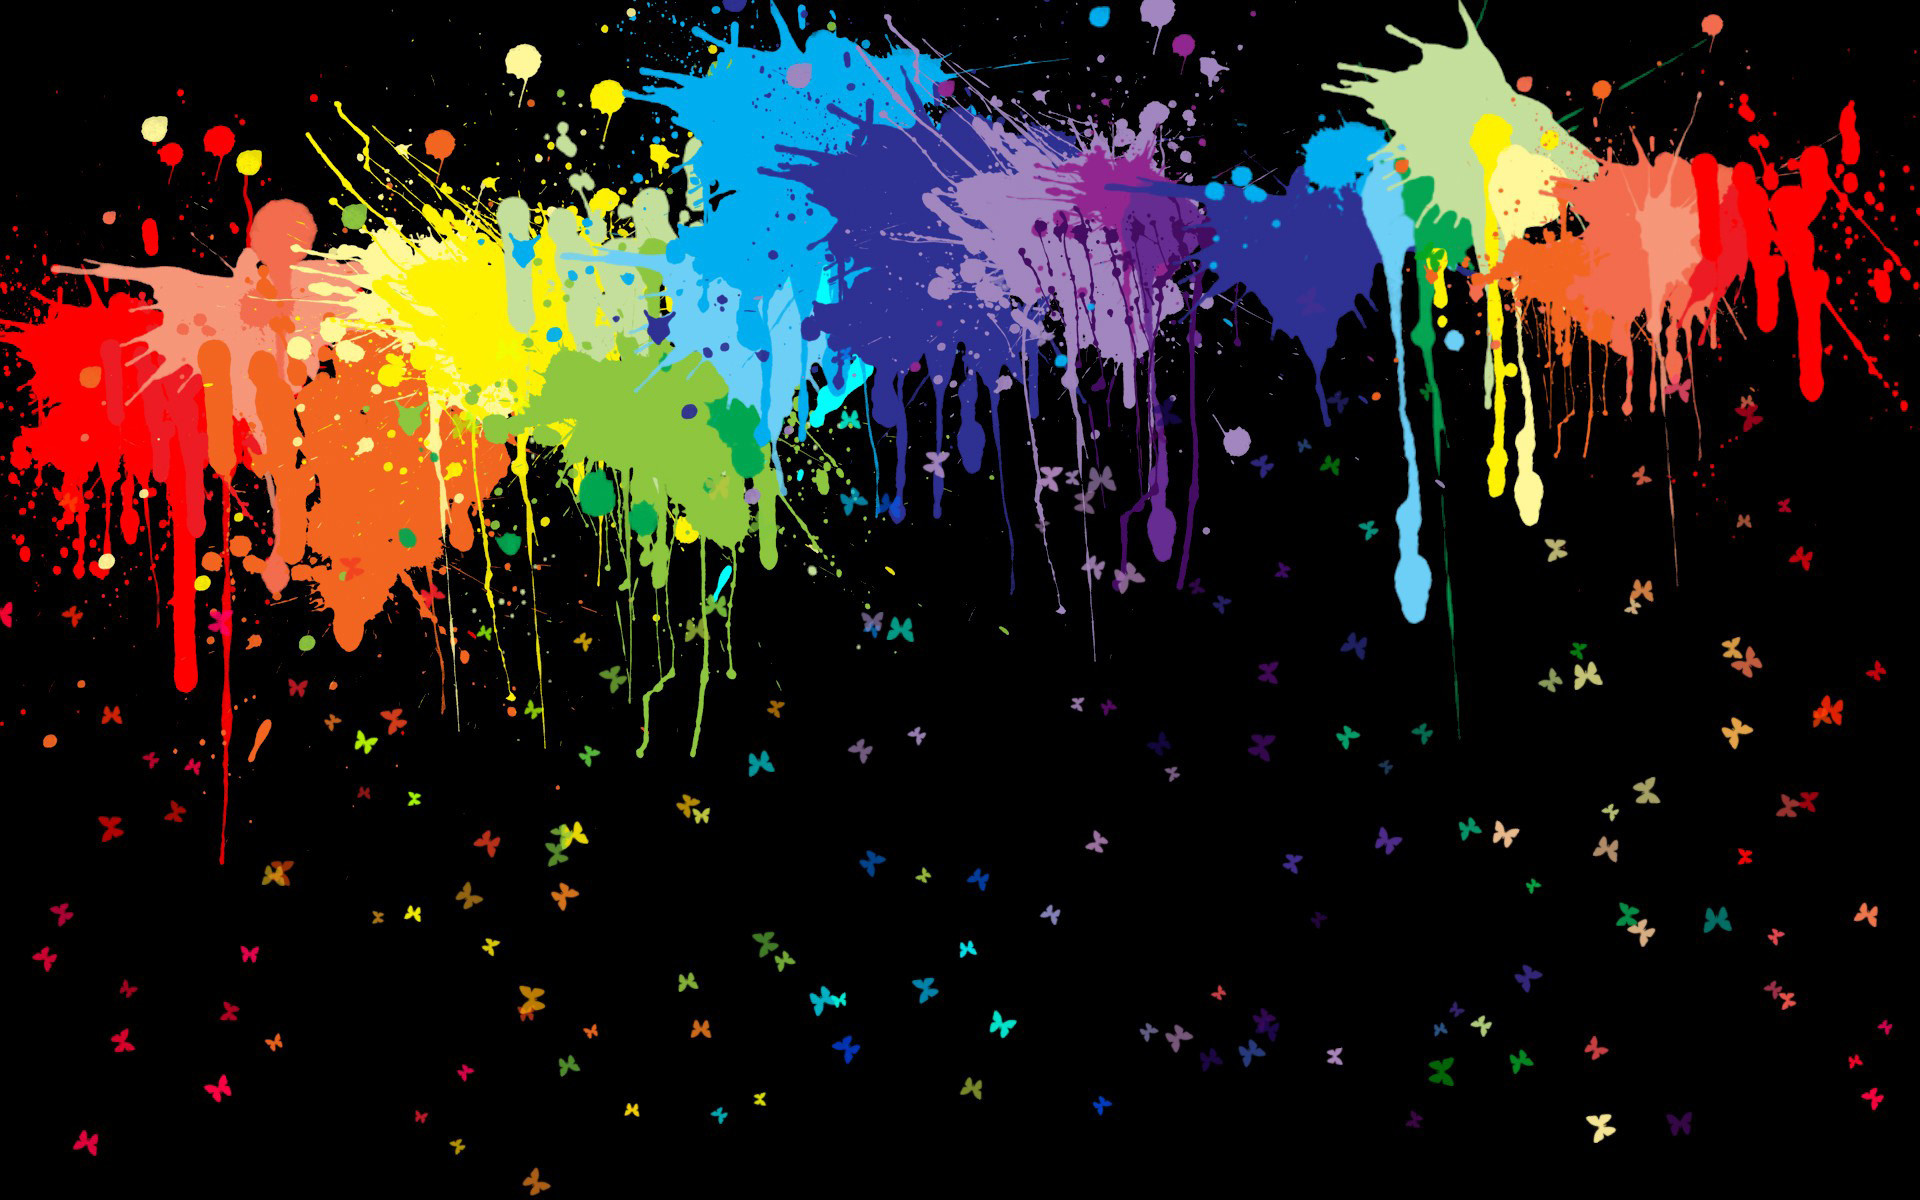 Rainbow Paint Splatter wallpaper 869